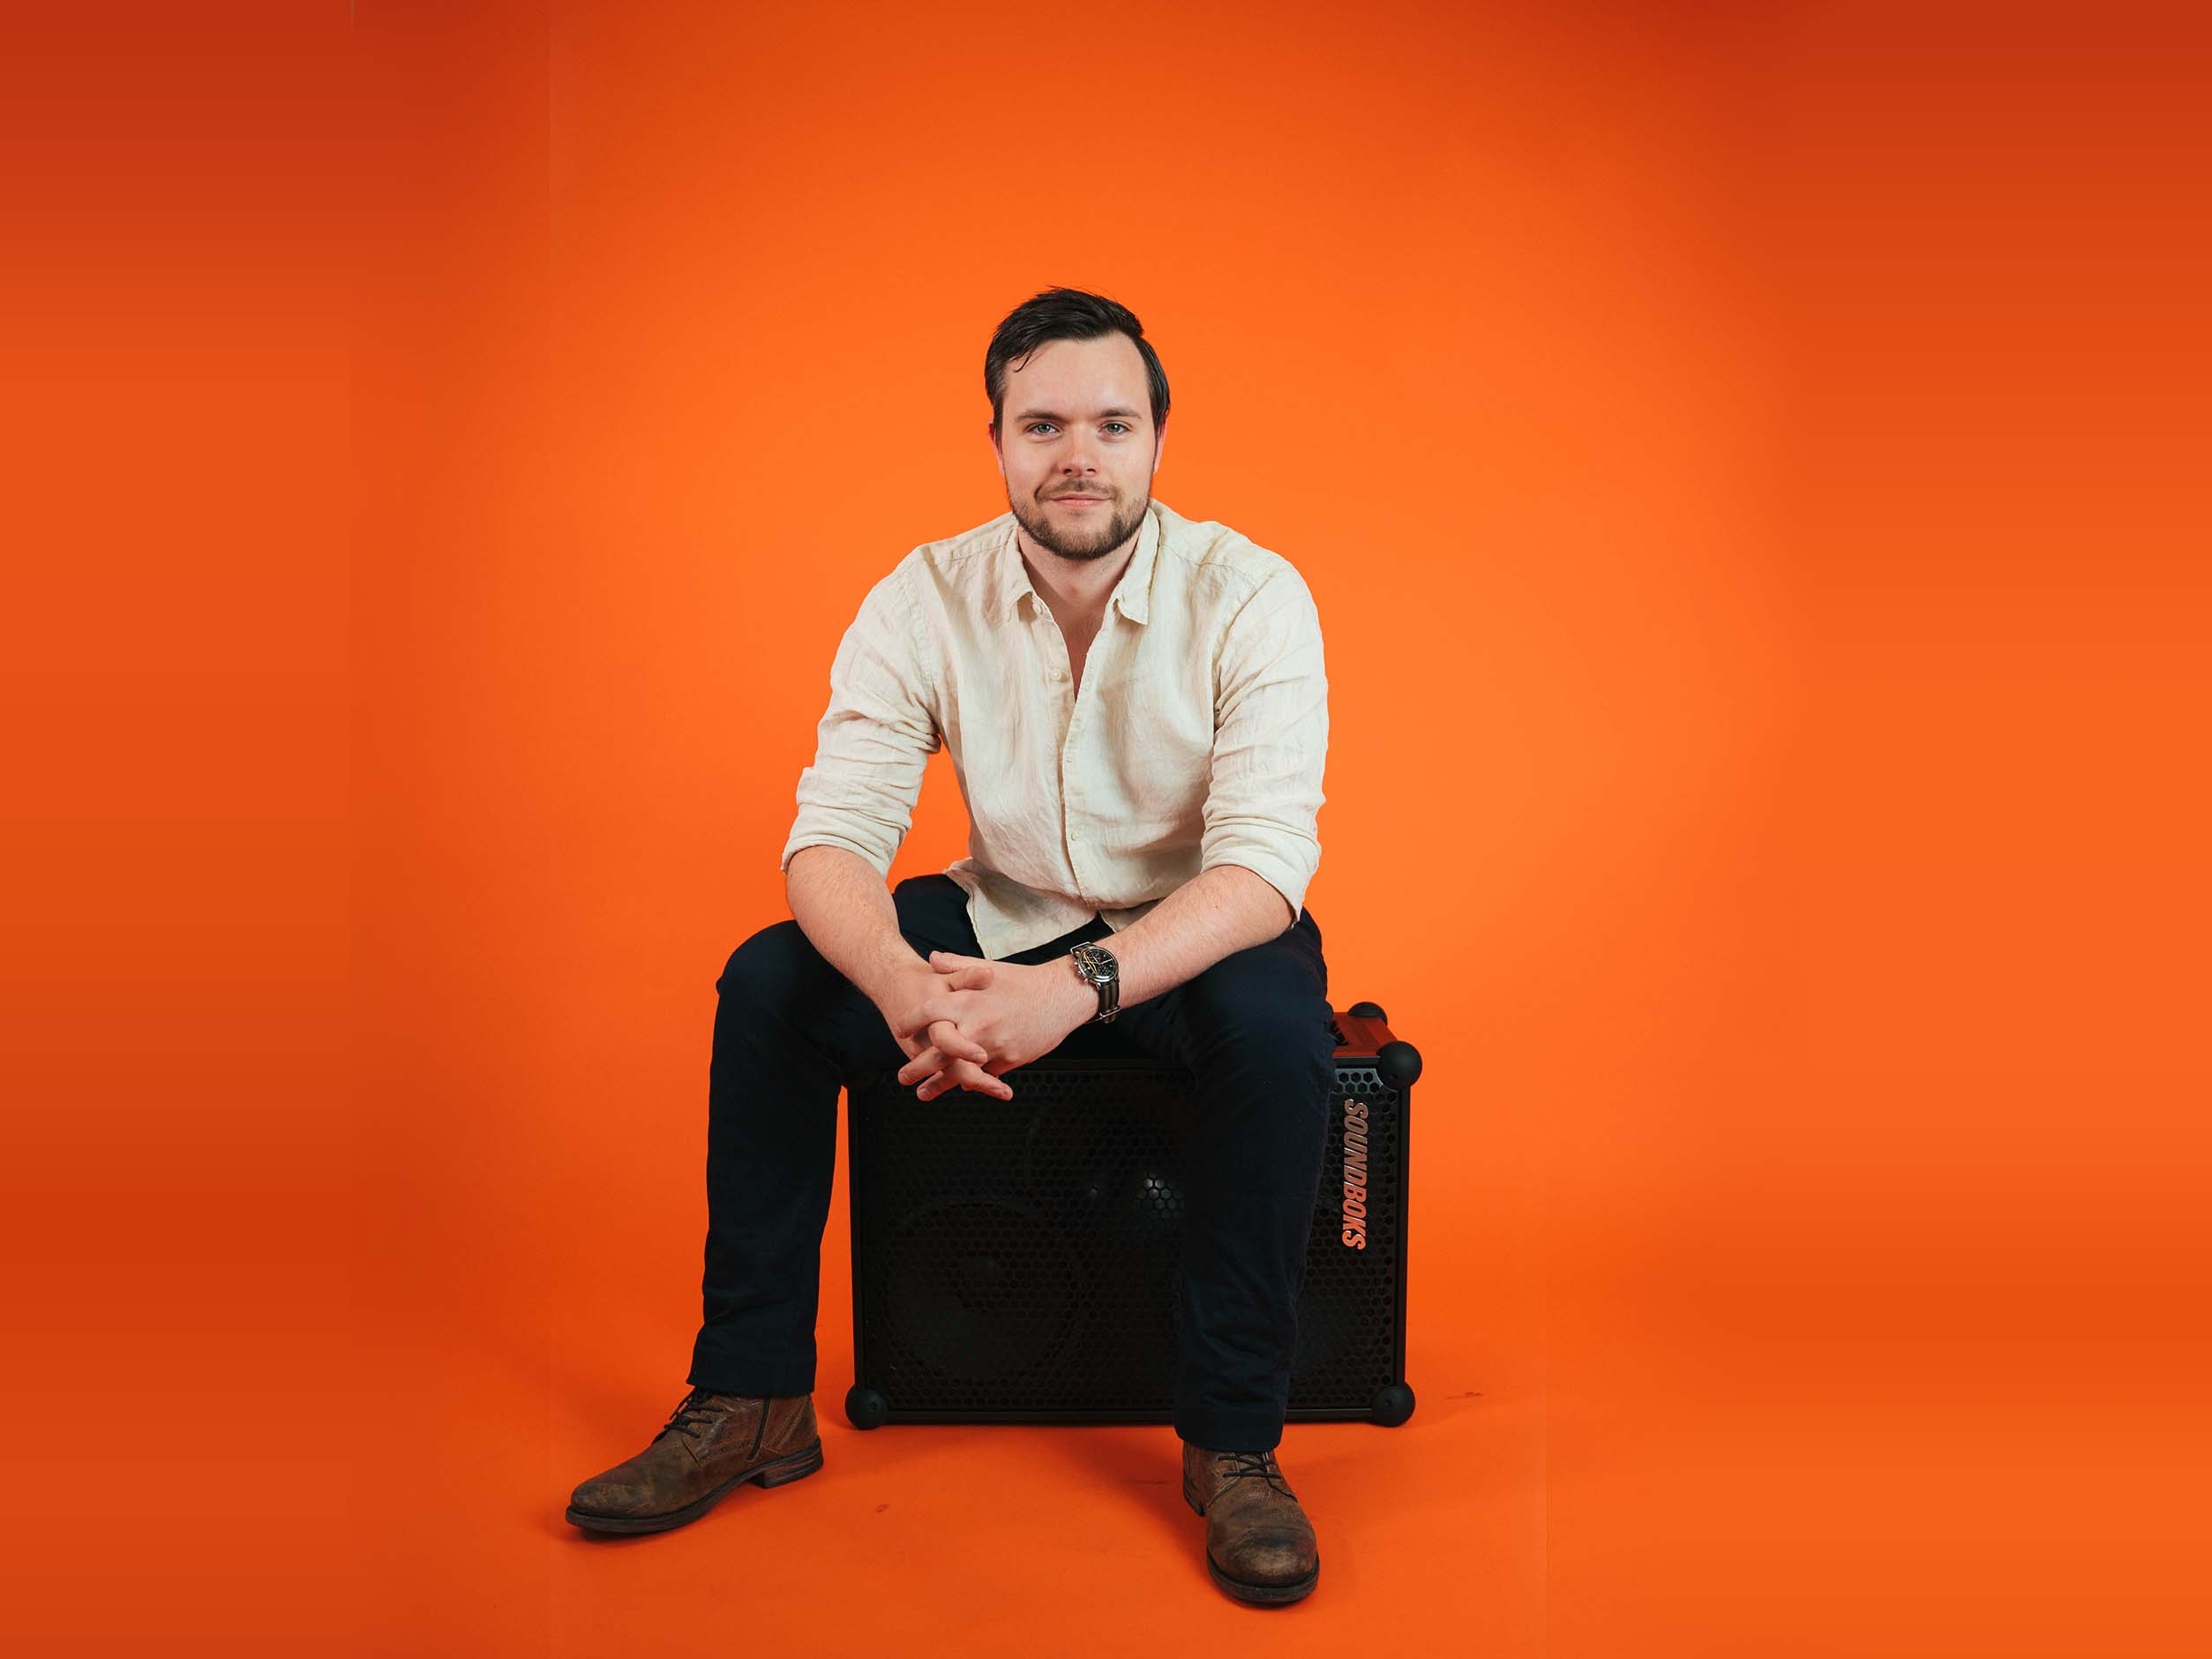 Rene sitting on a SOUNDBOKS in front of an orange background